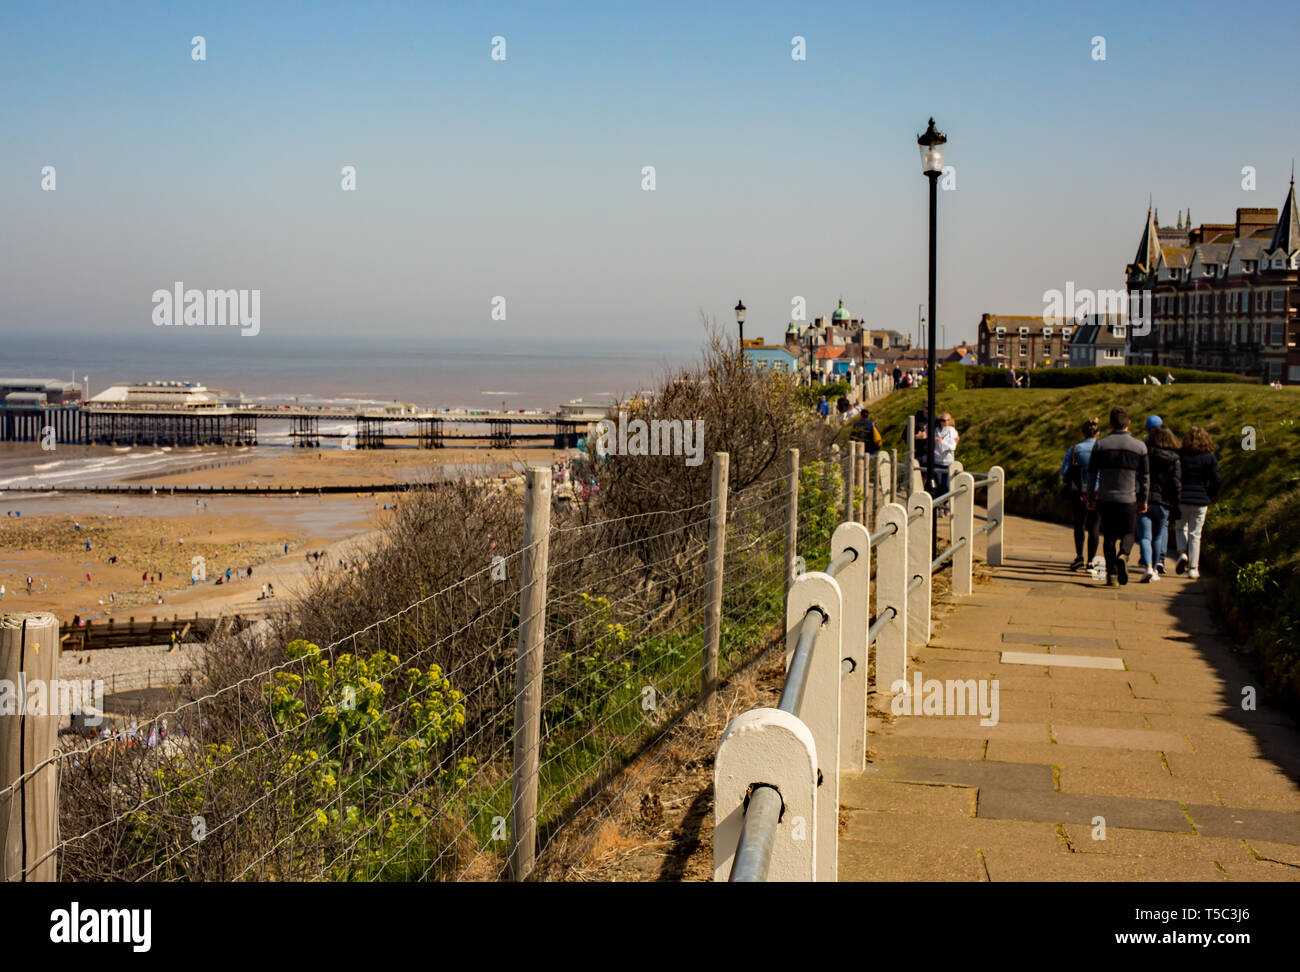 The Norfolk coastal path runs along the cliff tops in Cromer and is a popular path for tourists and holiday makers to reach the town centre from the c - Stock Image